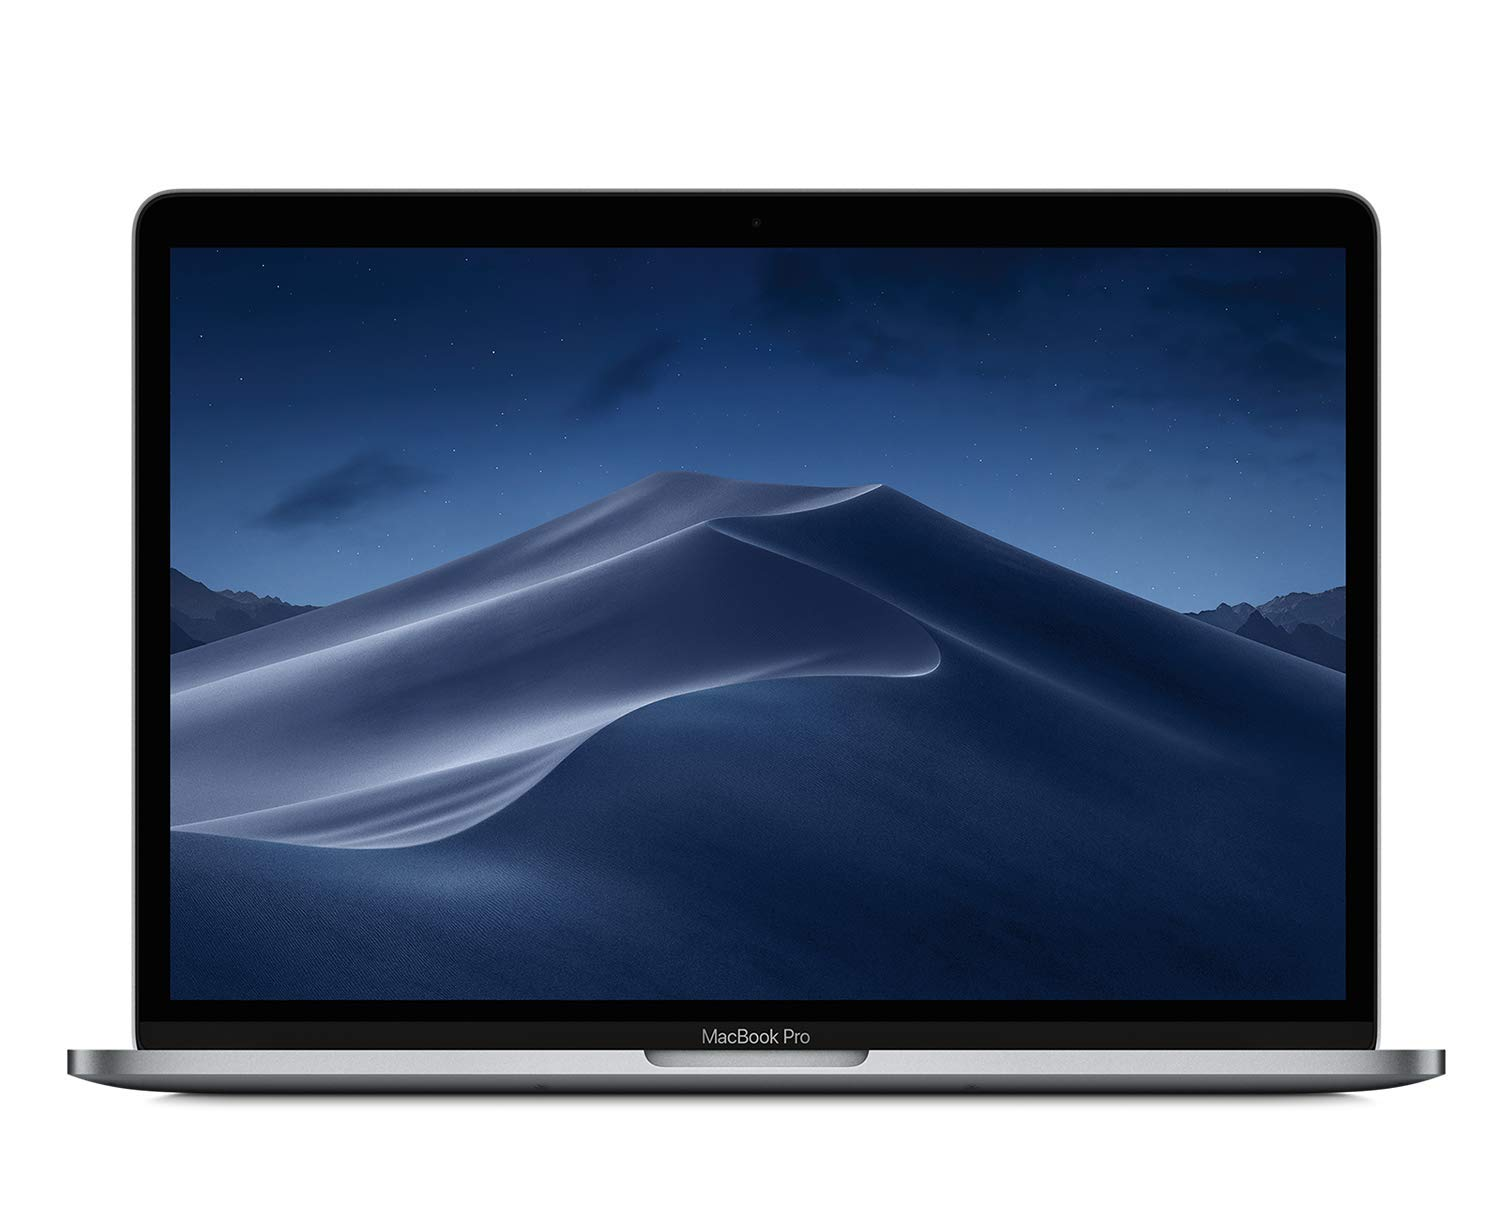 Apple MacBook Pro (13-inch, Touch Bar, 2.4GHz quad-core Intel Core i5, 8GB RAM, 256GB SSD) - Space Gray (Latest Model) by Apple